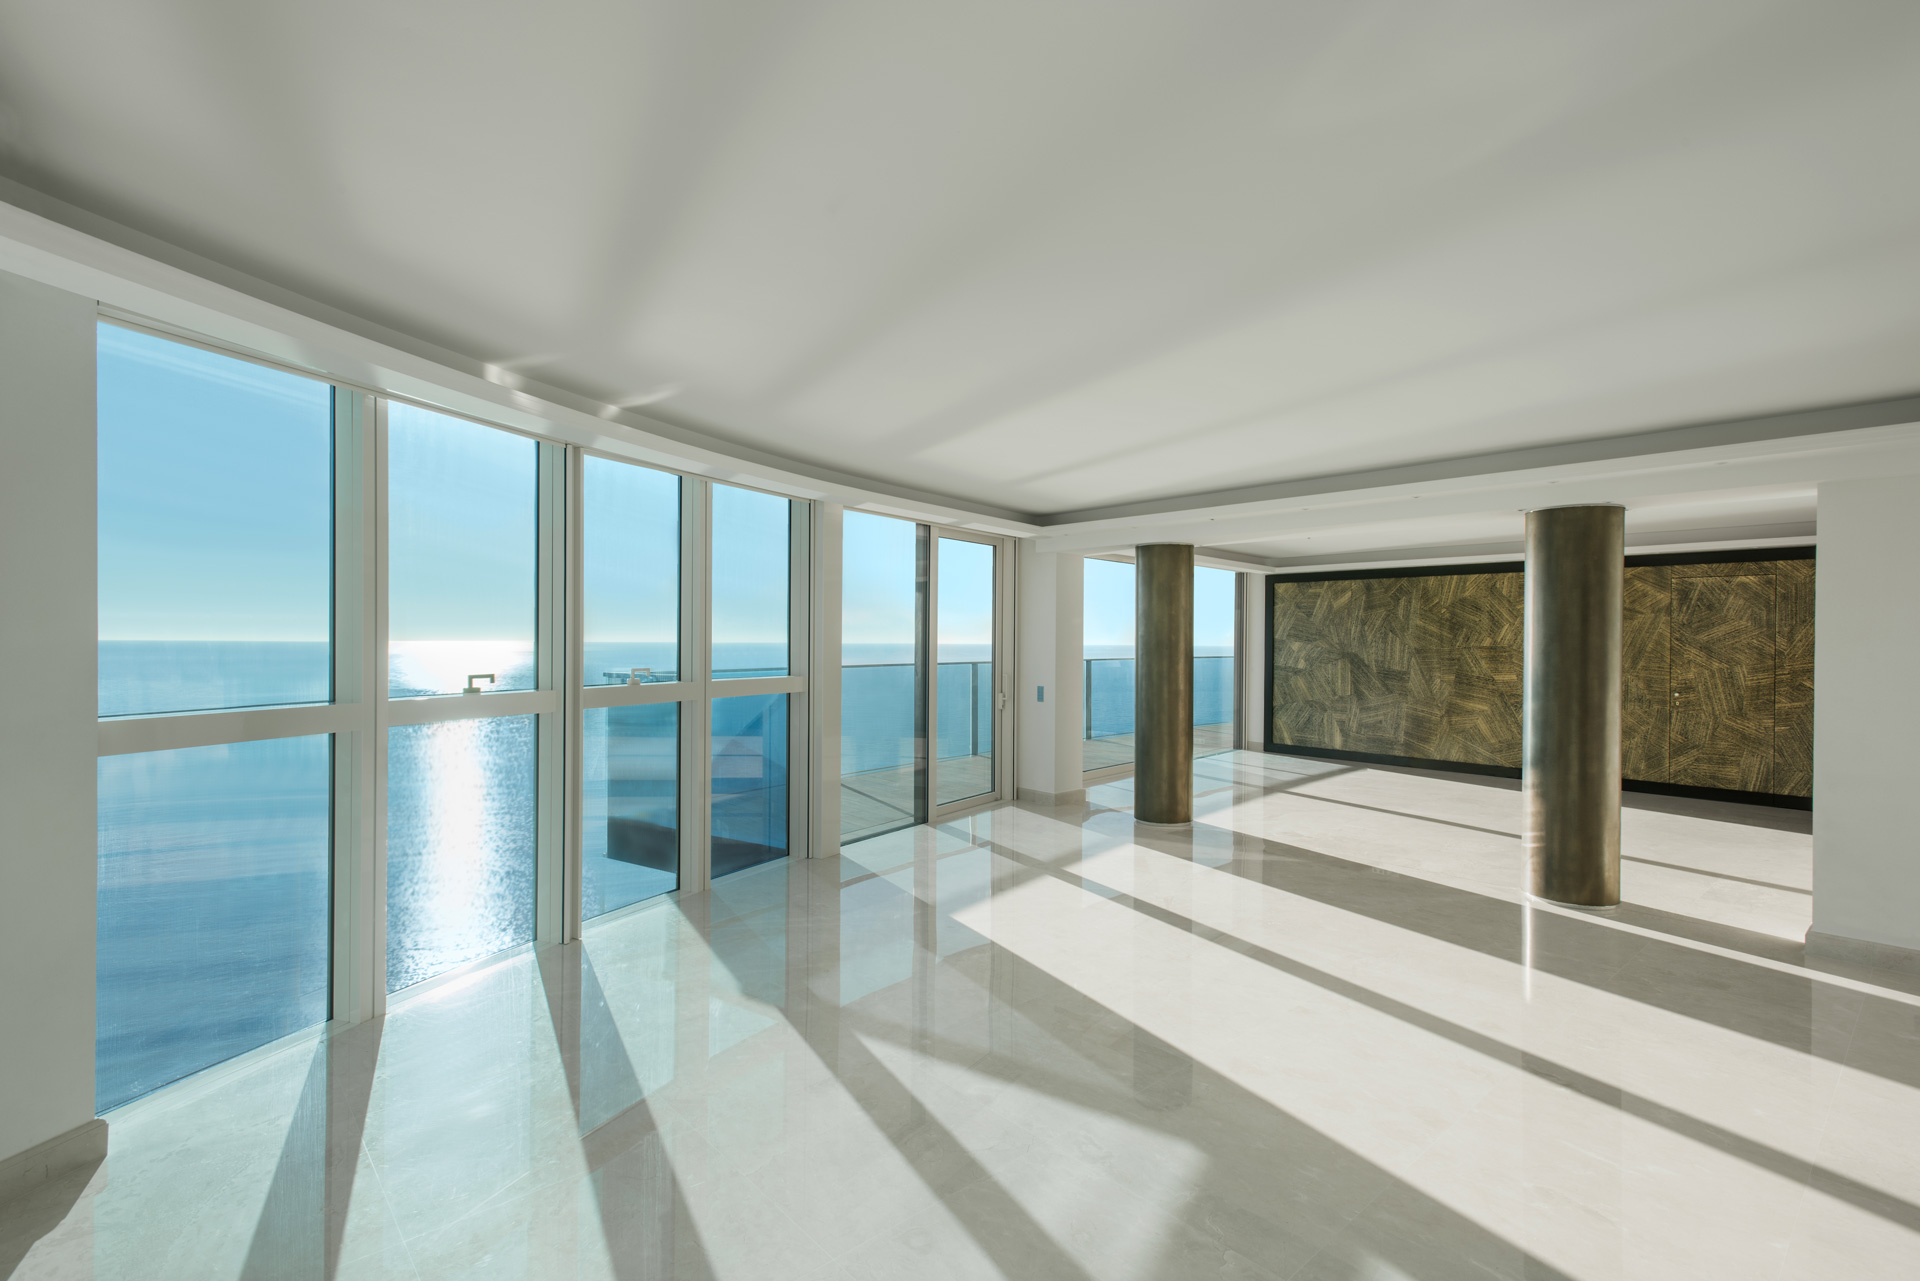 Apartments Duplex And Penthouses Tour Od 233 On In Monaco